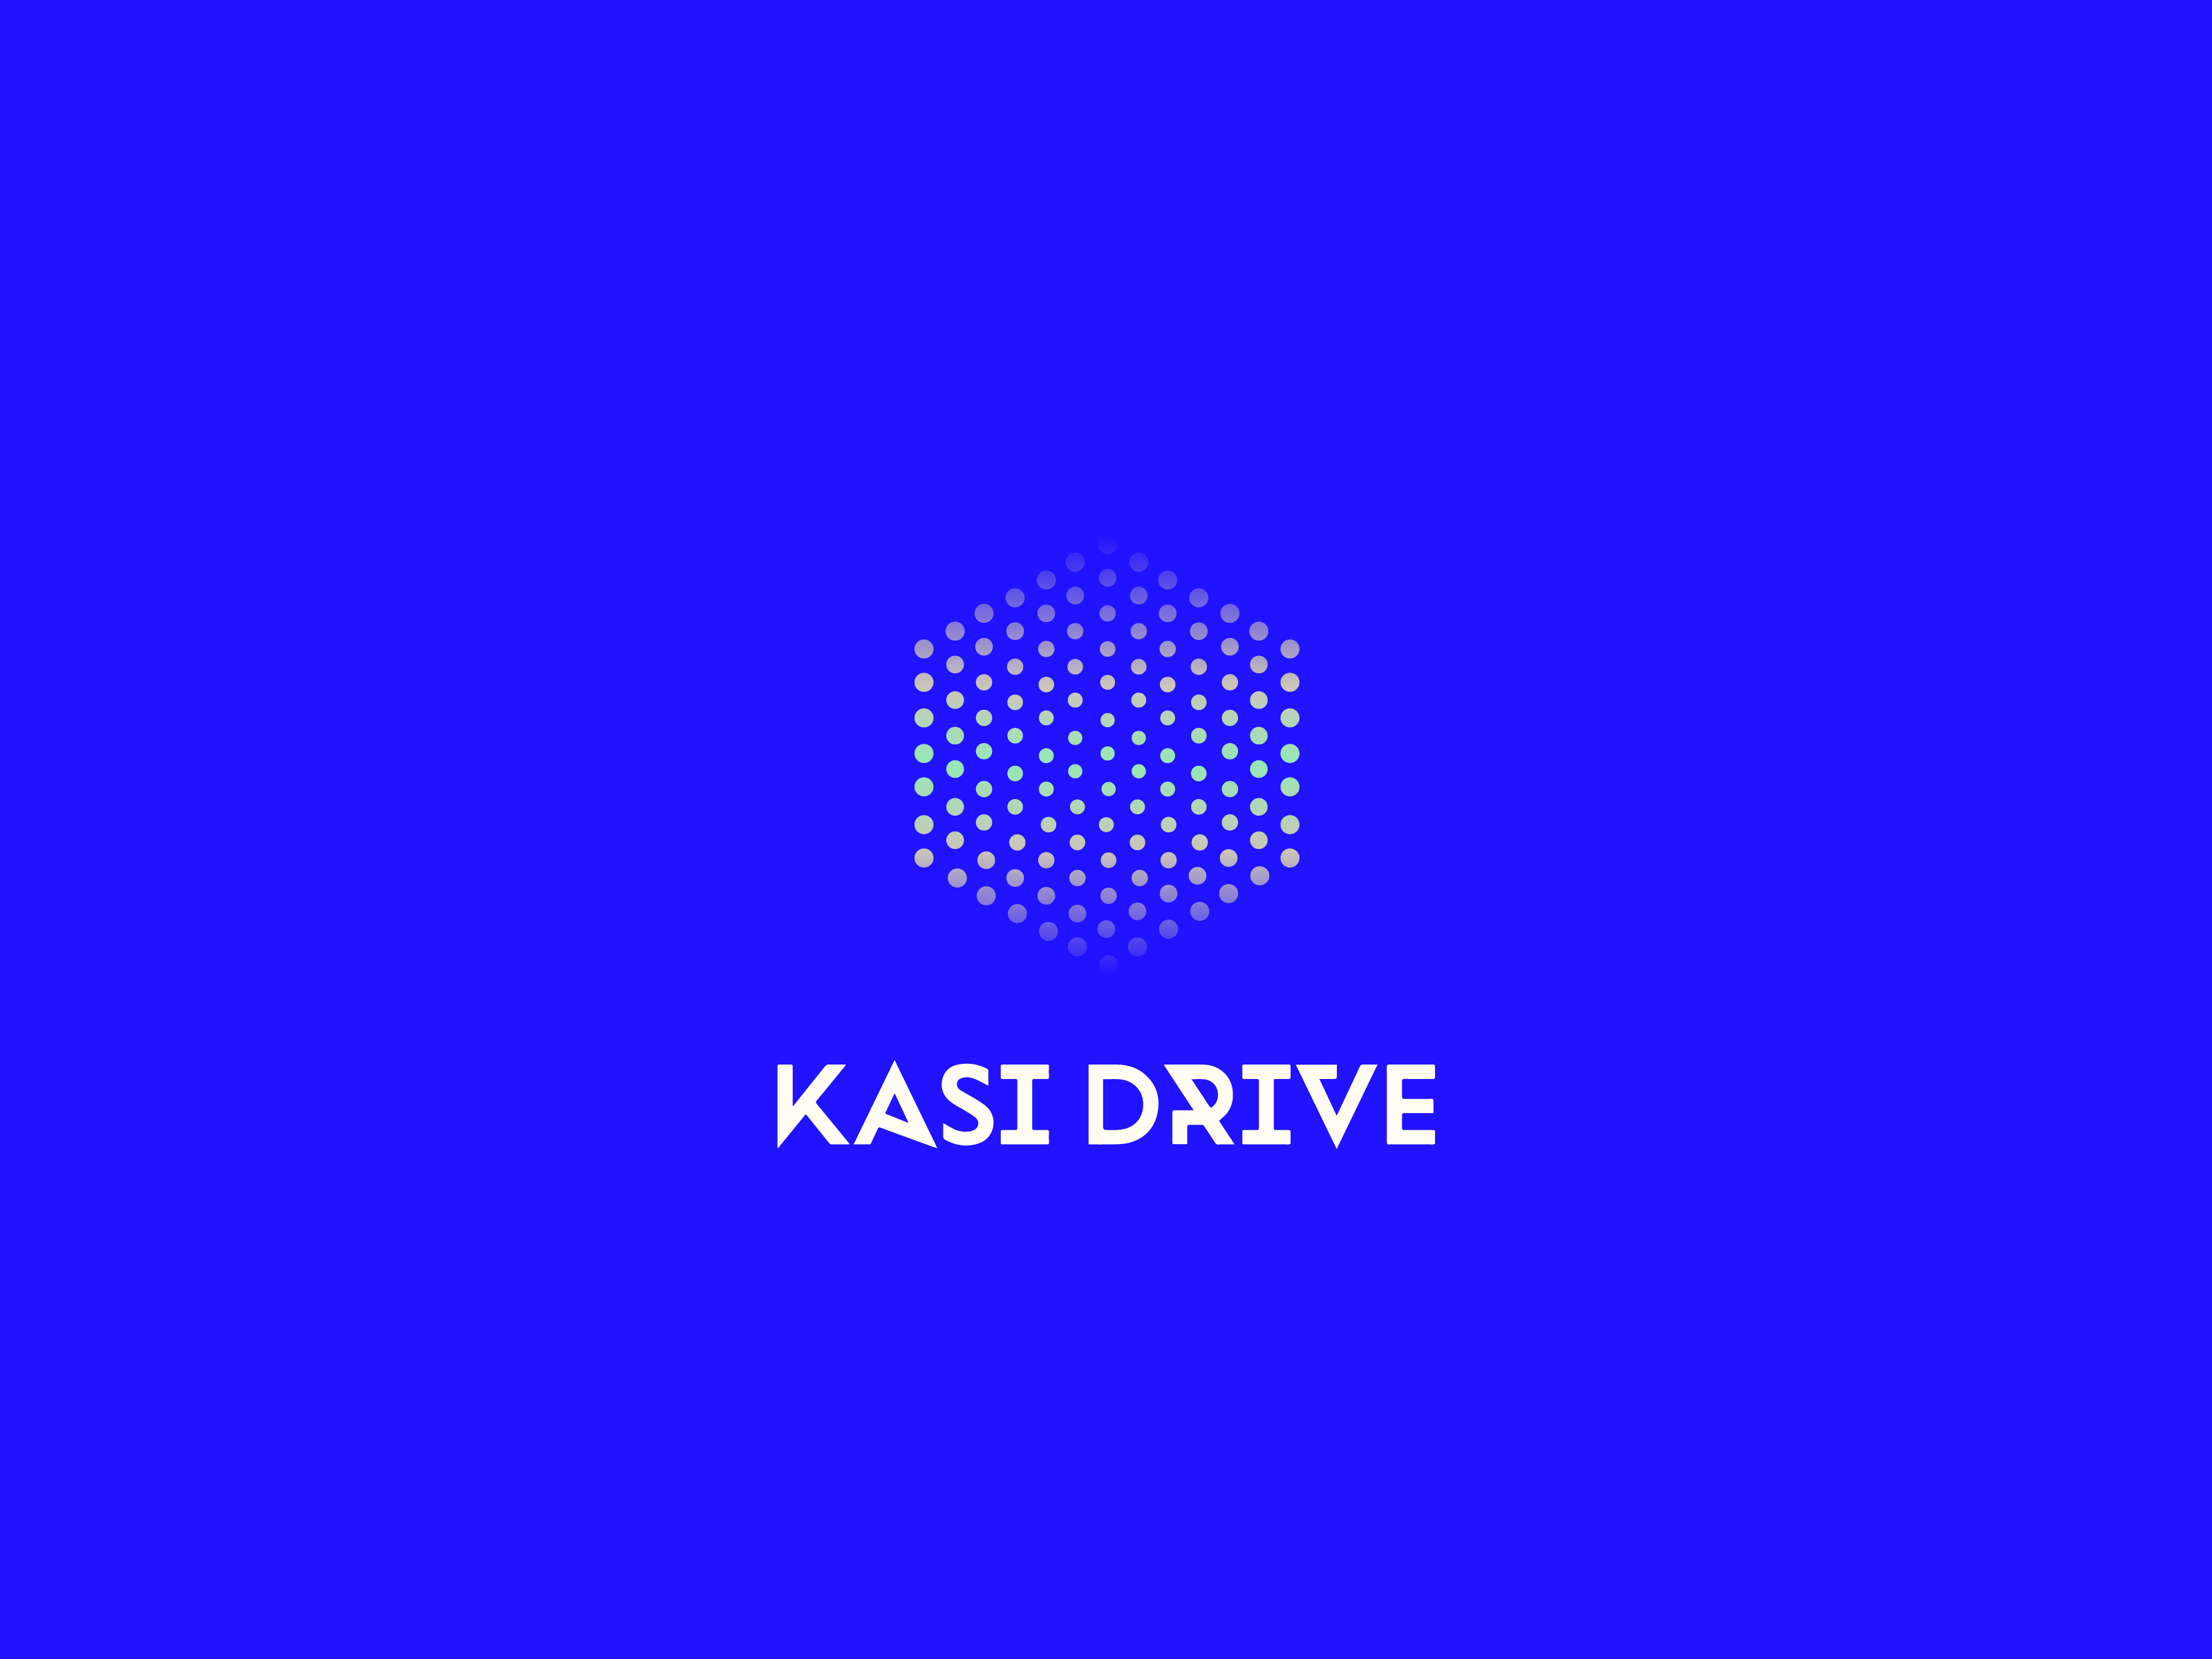 Kasi Drive - Voice recognition for automotive vehicles